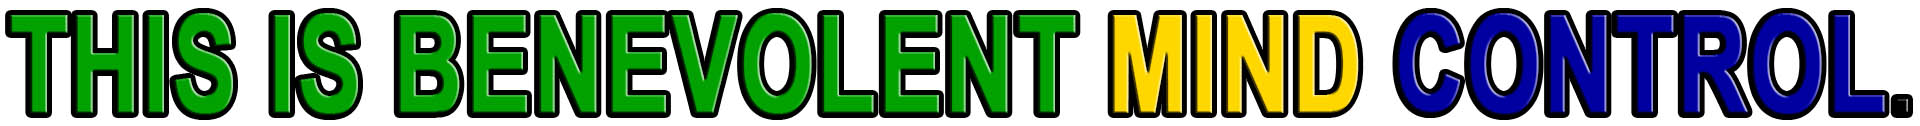 THIS IS BENEVOLENT MIND CONTROL